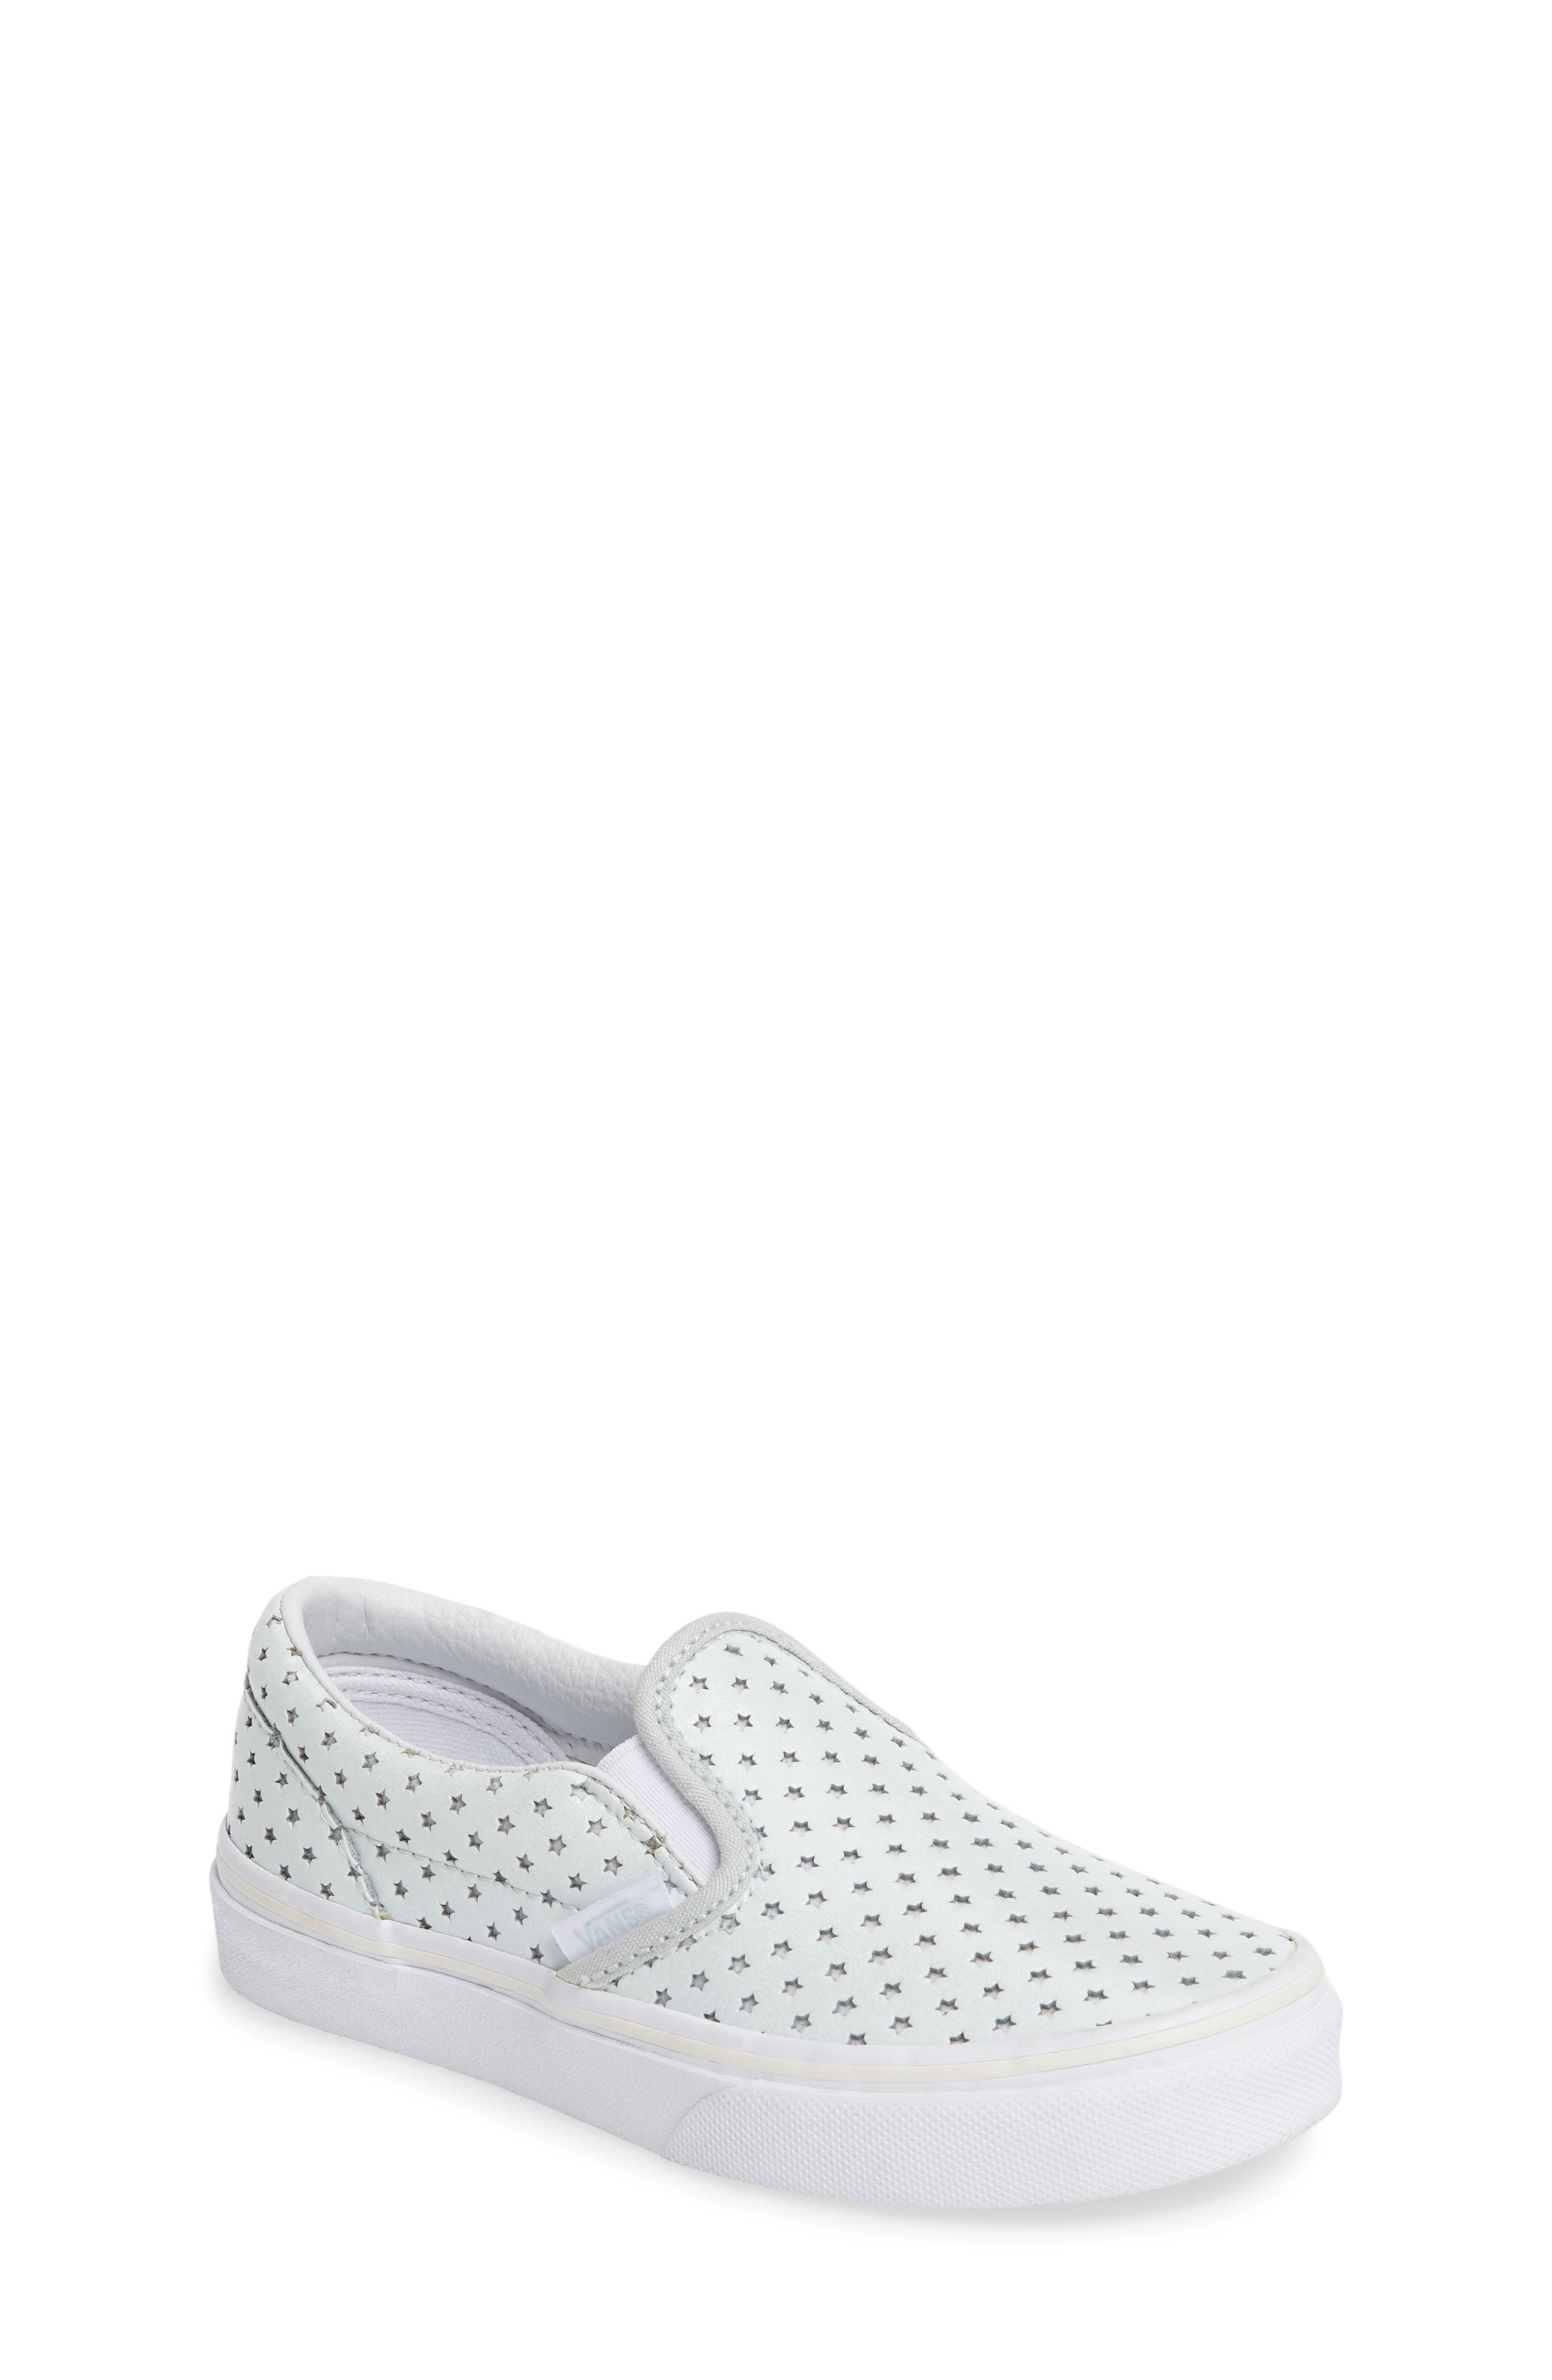 Vans Classic Perforated Slip-On Sneaker (Baby, Walker, Toddler, Little Kid & Big Kid)